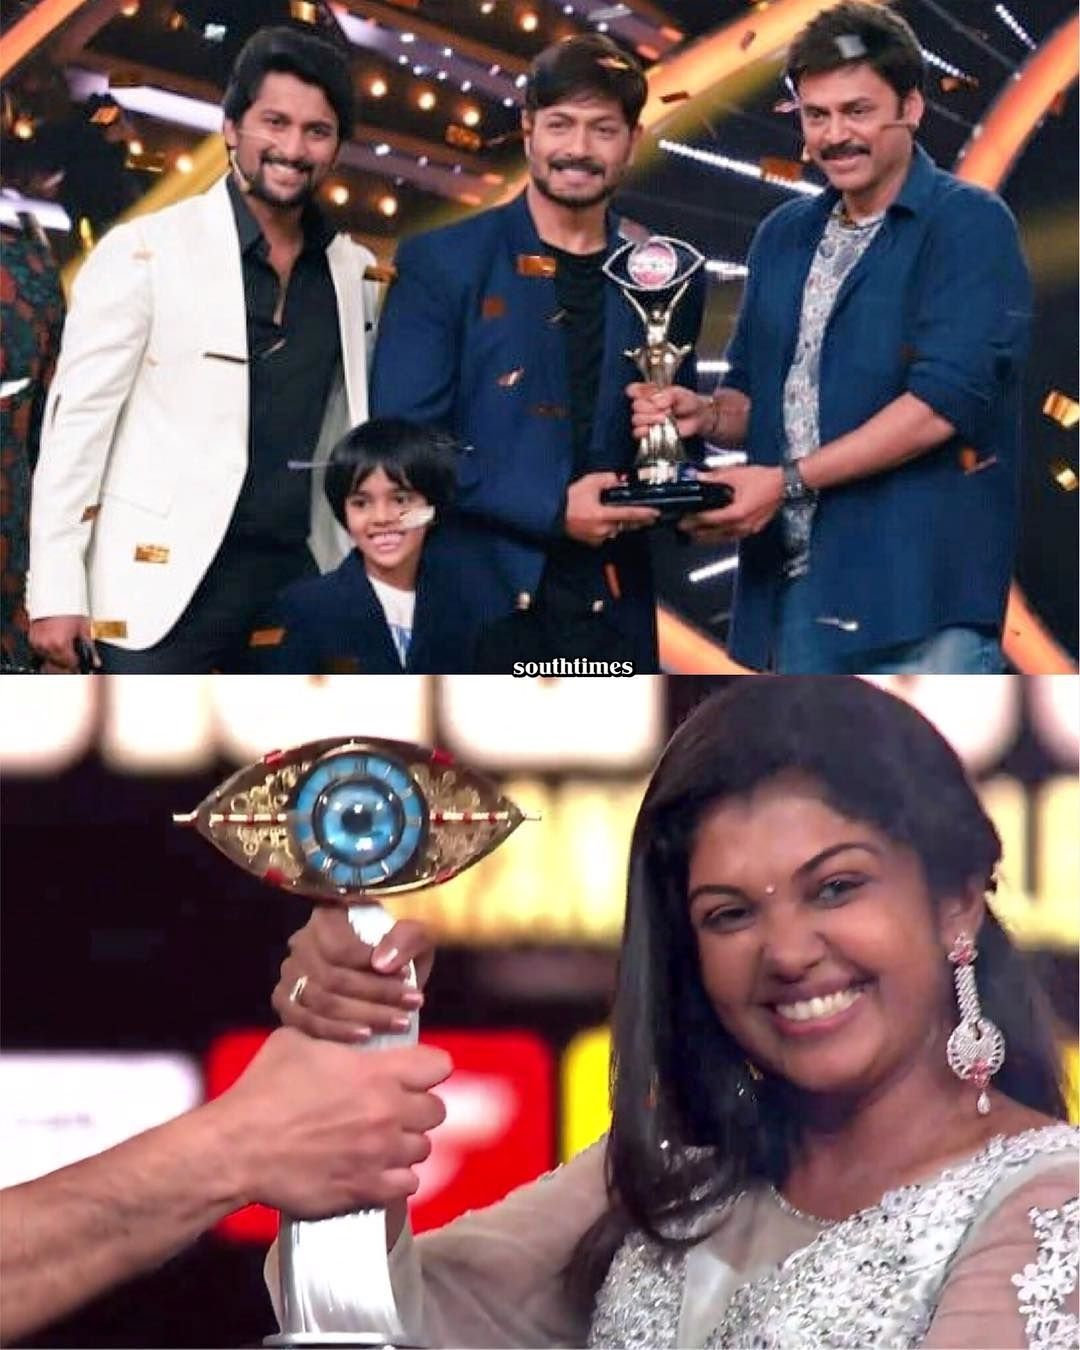 Congratulations to Kaushal and Riythvika on emerging as the